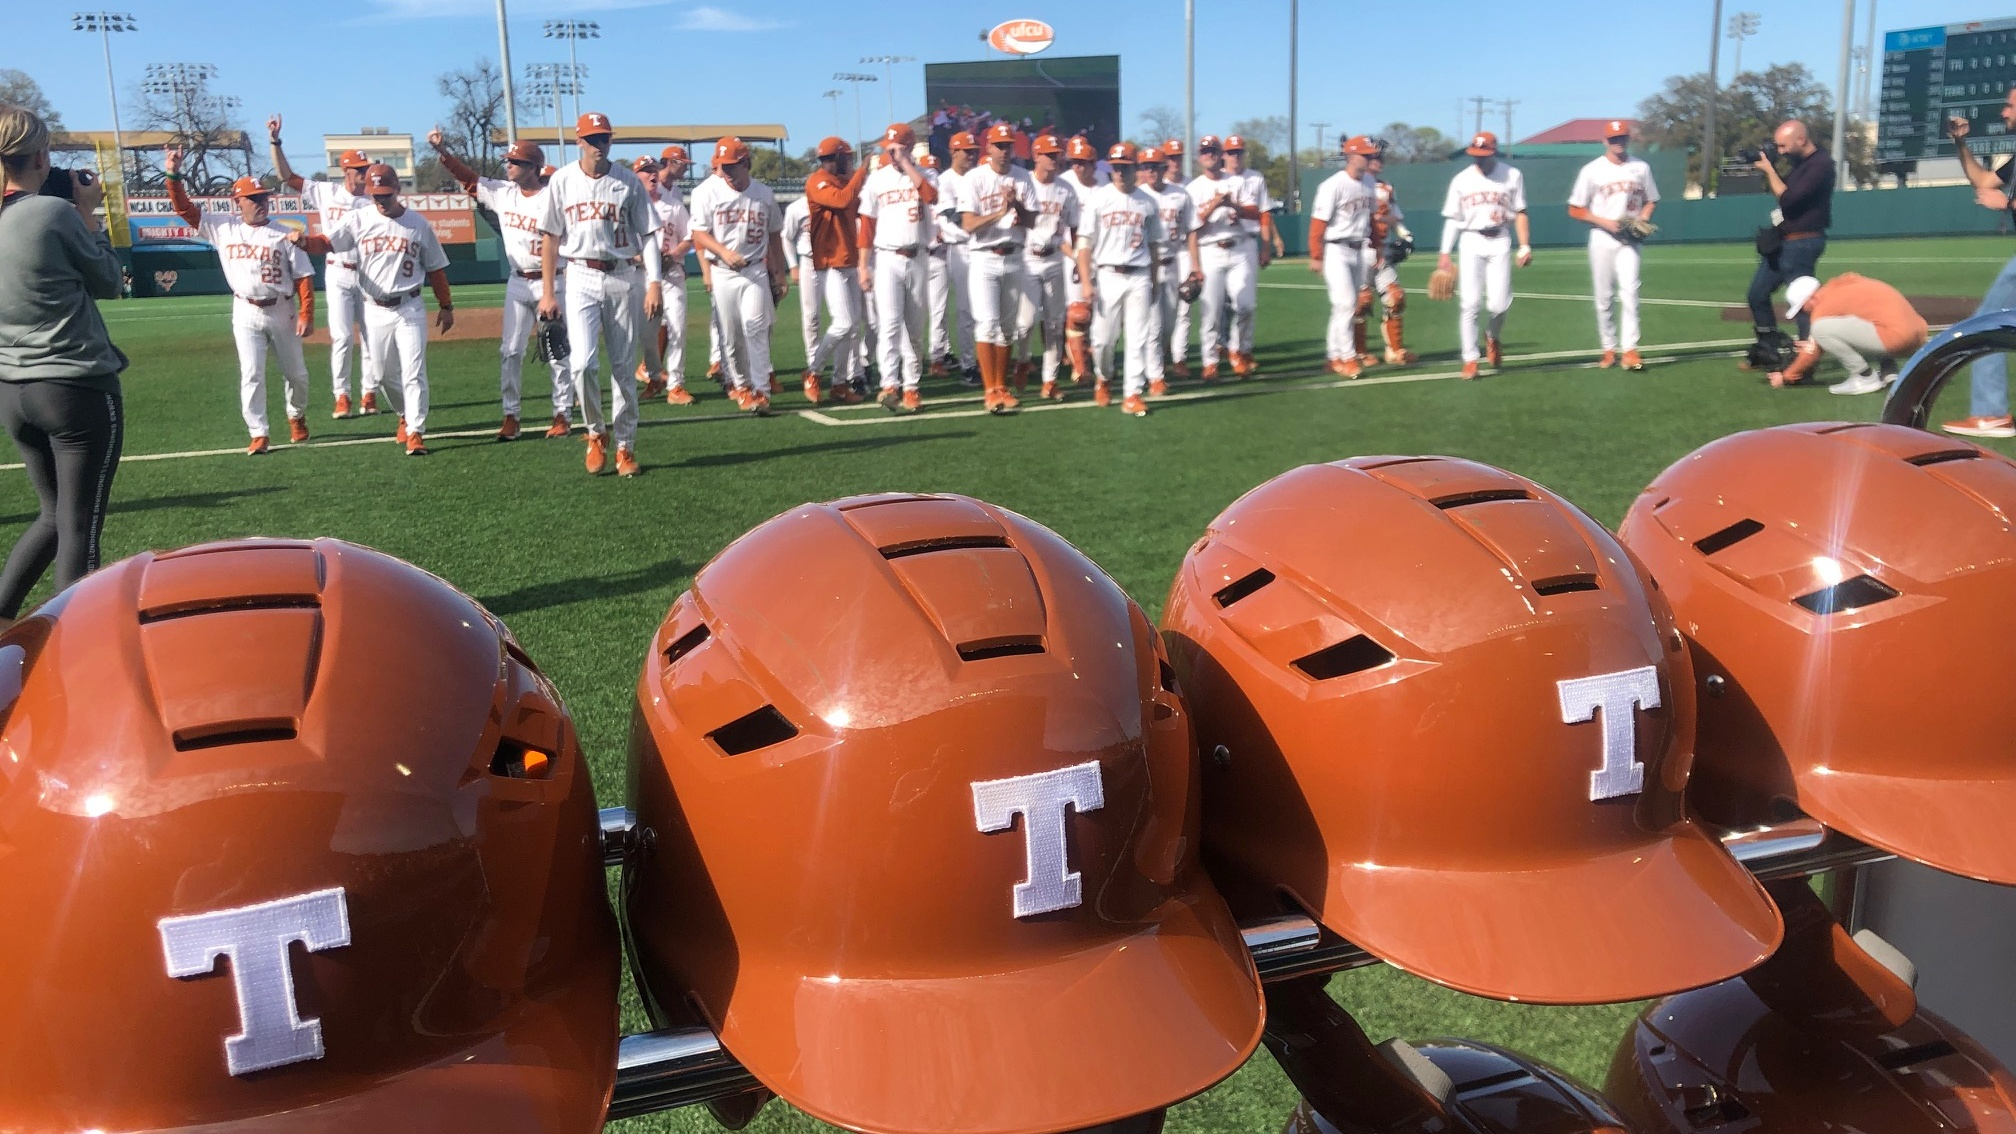 Longhorns baseball vs Tech 2019